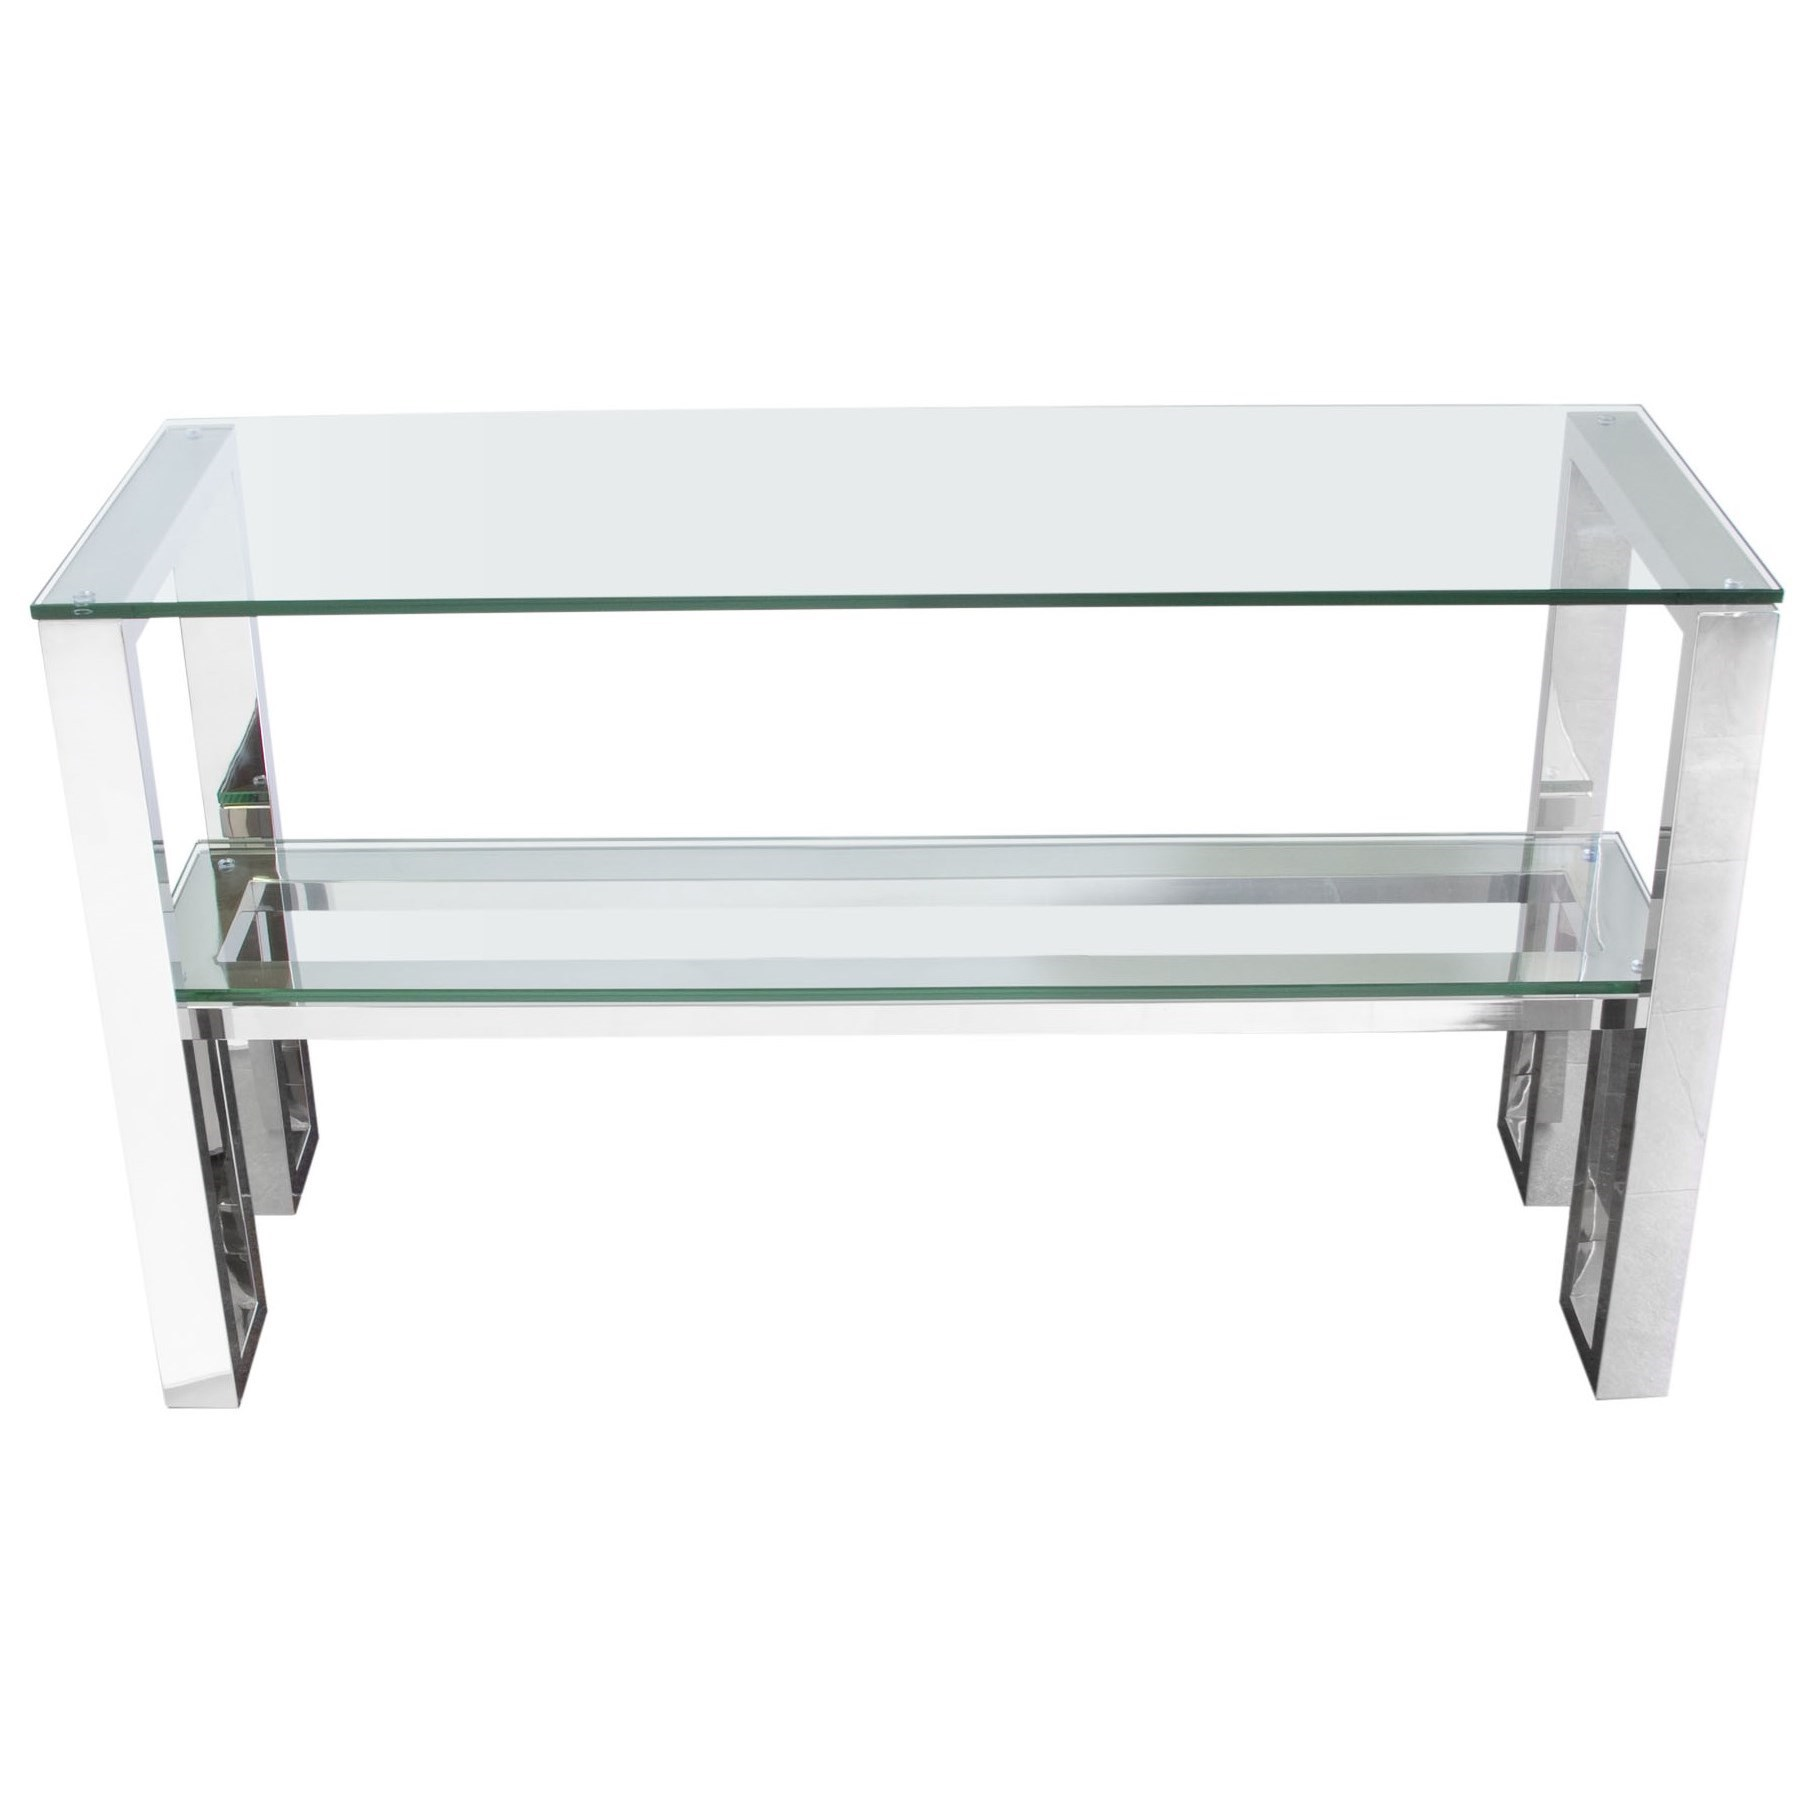 Glass Top Console Table Carlsbad Console Table With Clear Glass Top And Stainless Steel Frame By Diamond Sofa At Boulevard Home Furnishings